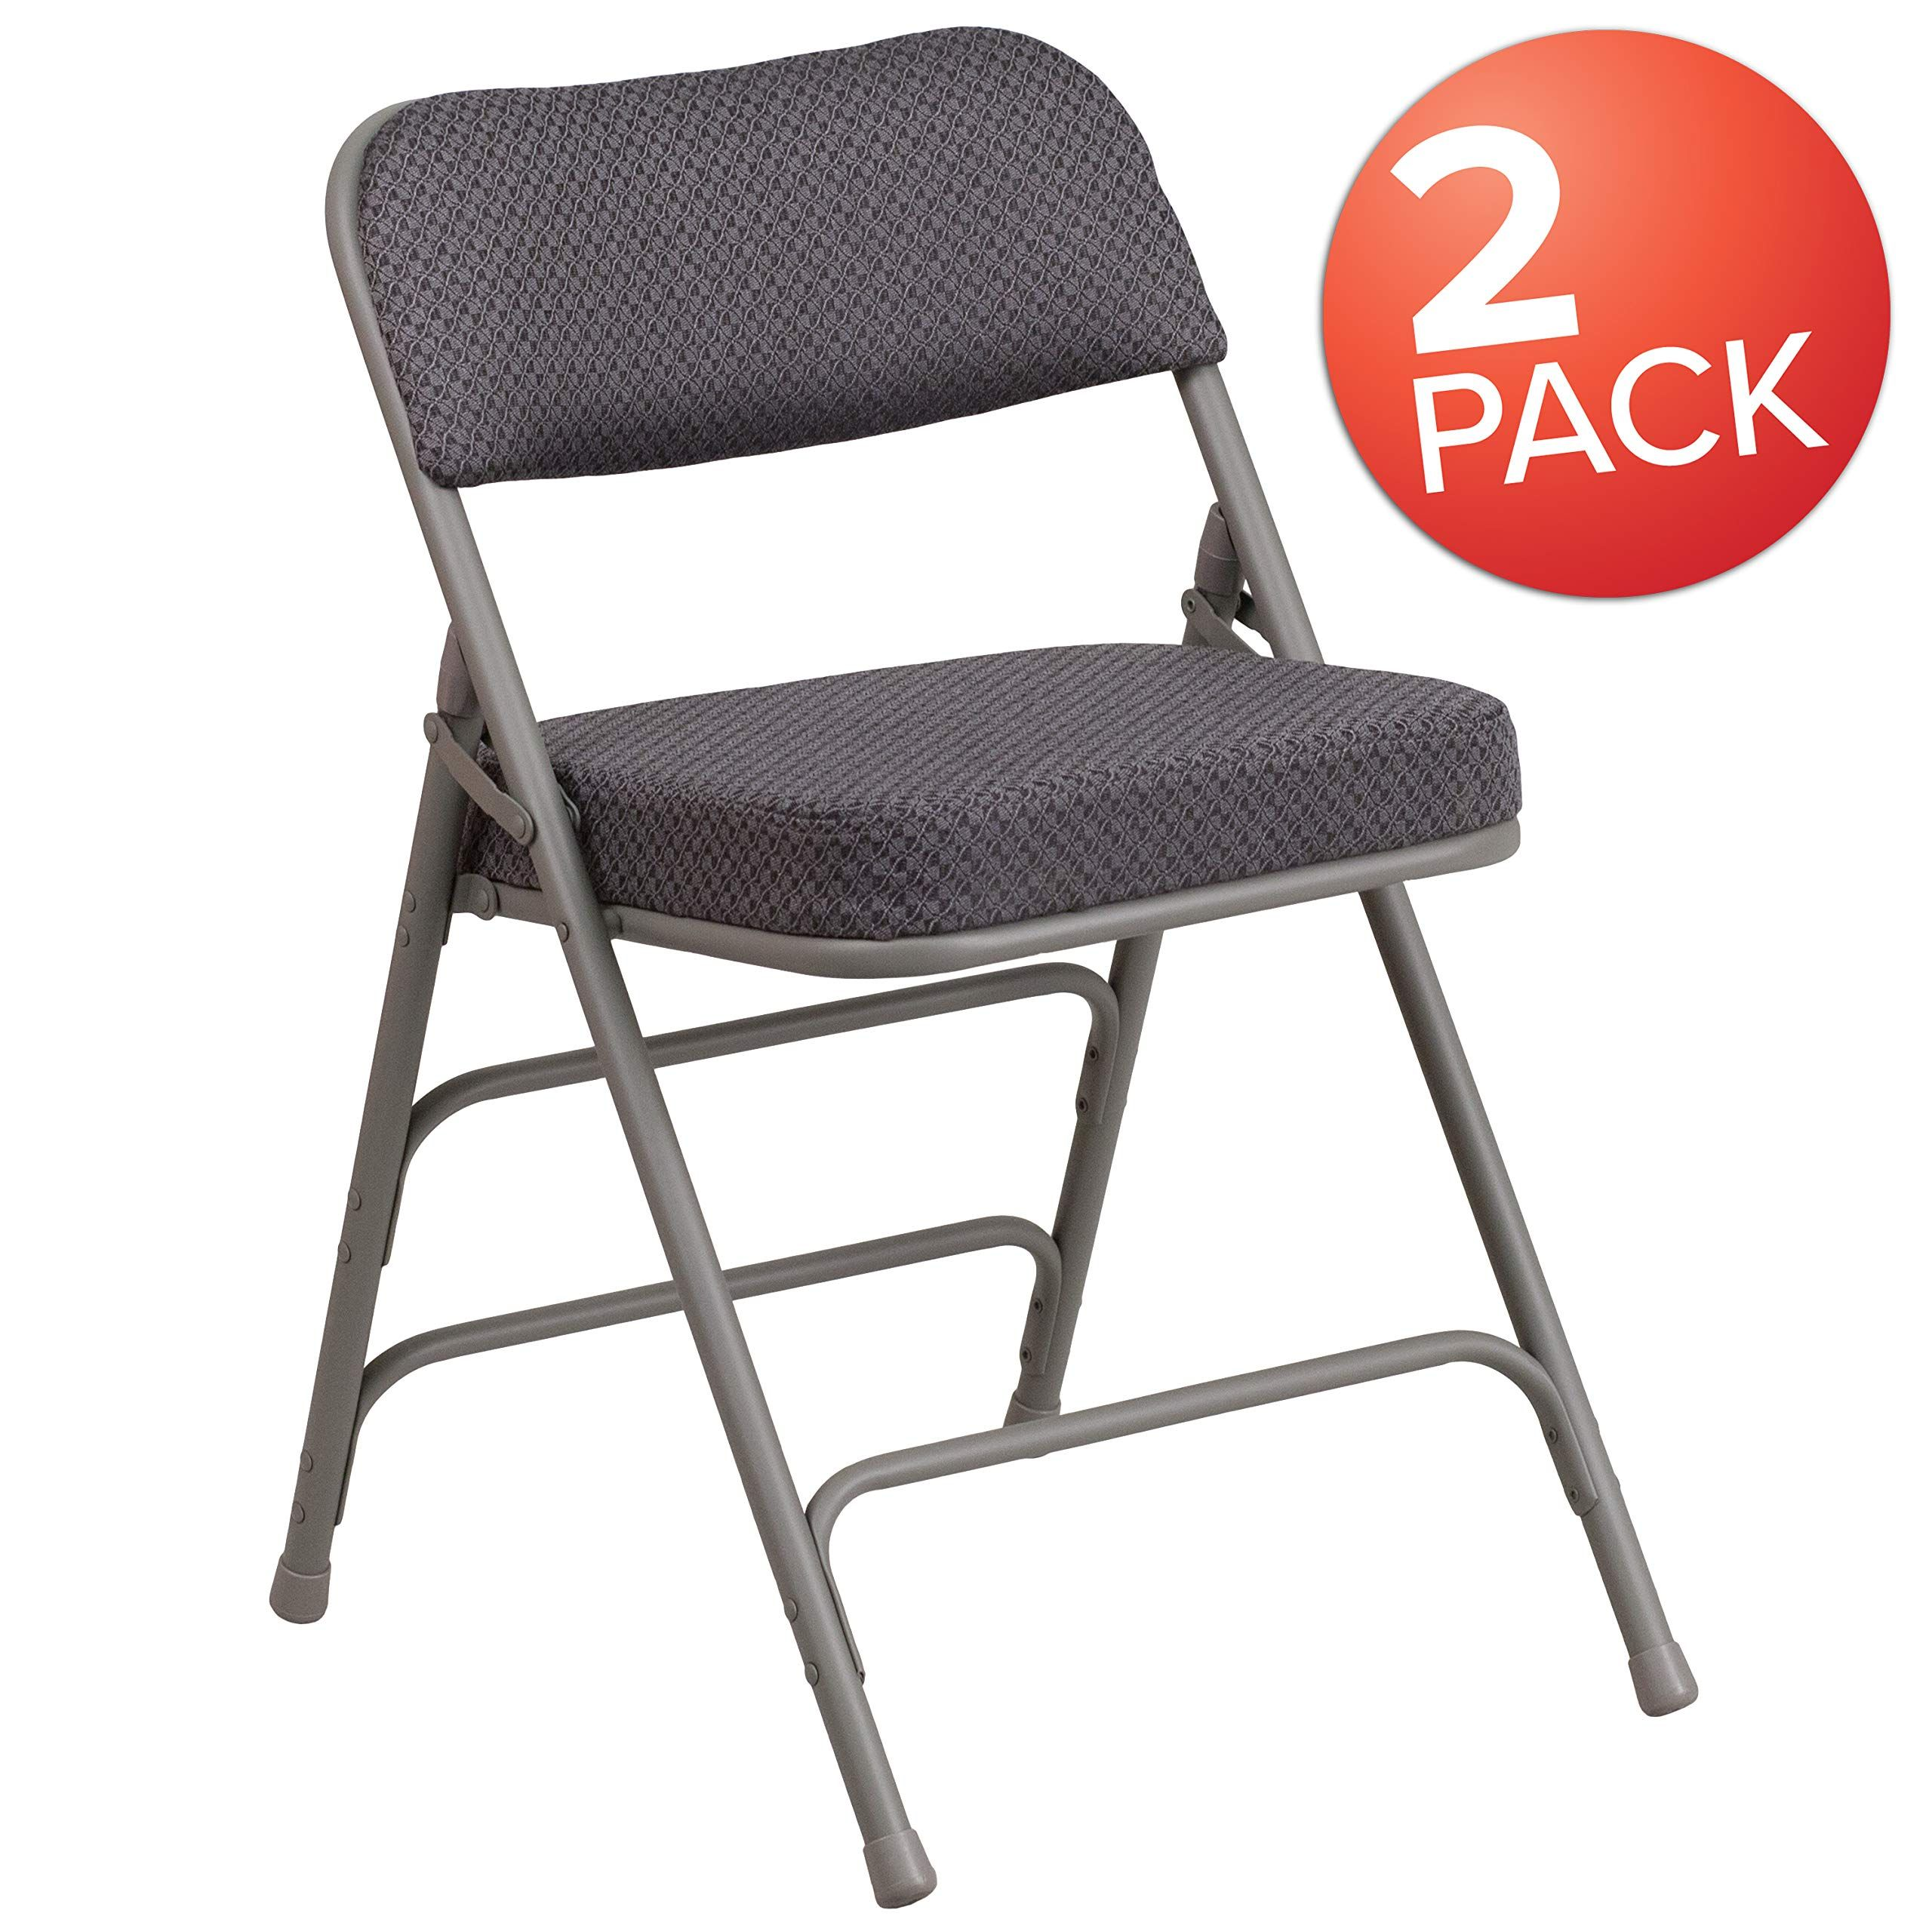 Flash Furniture 2 Pk Hercules Series Premium Curved Triple Braced Amp Double Hinged Gray Fabric Met Metal Folding Chairs Folding Chair Padded Folding Chairs